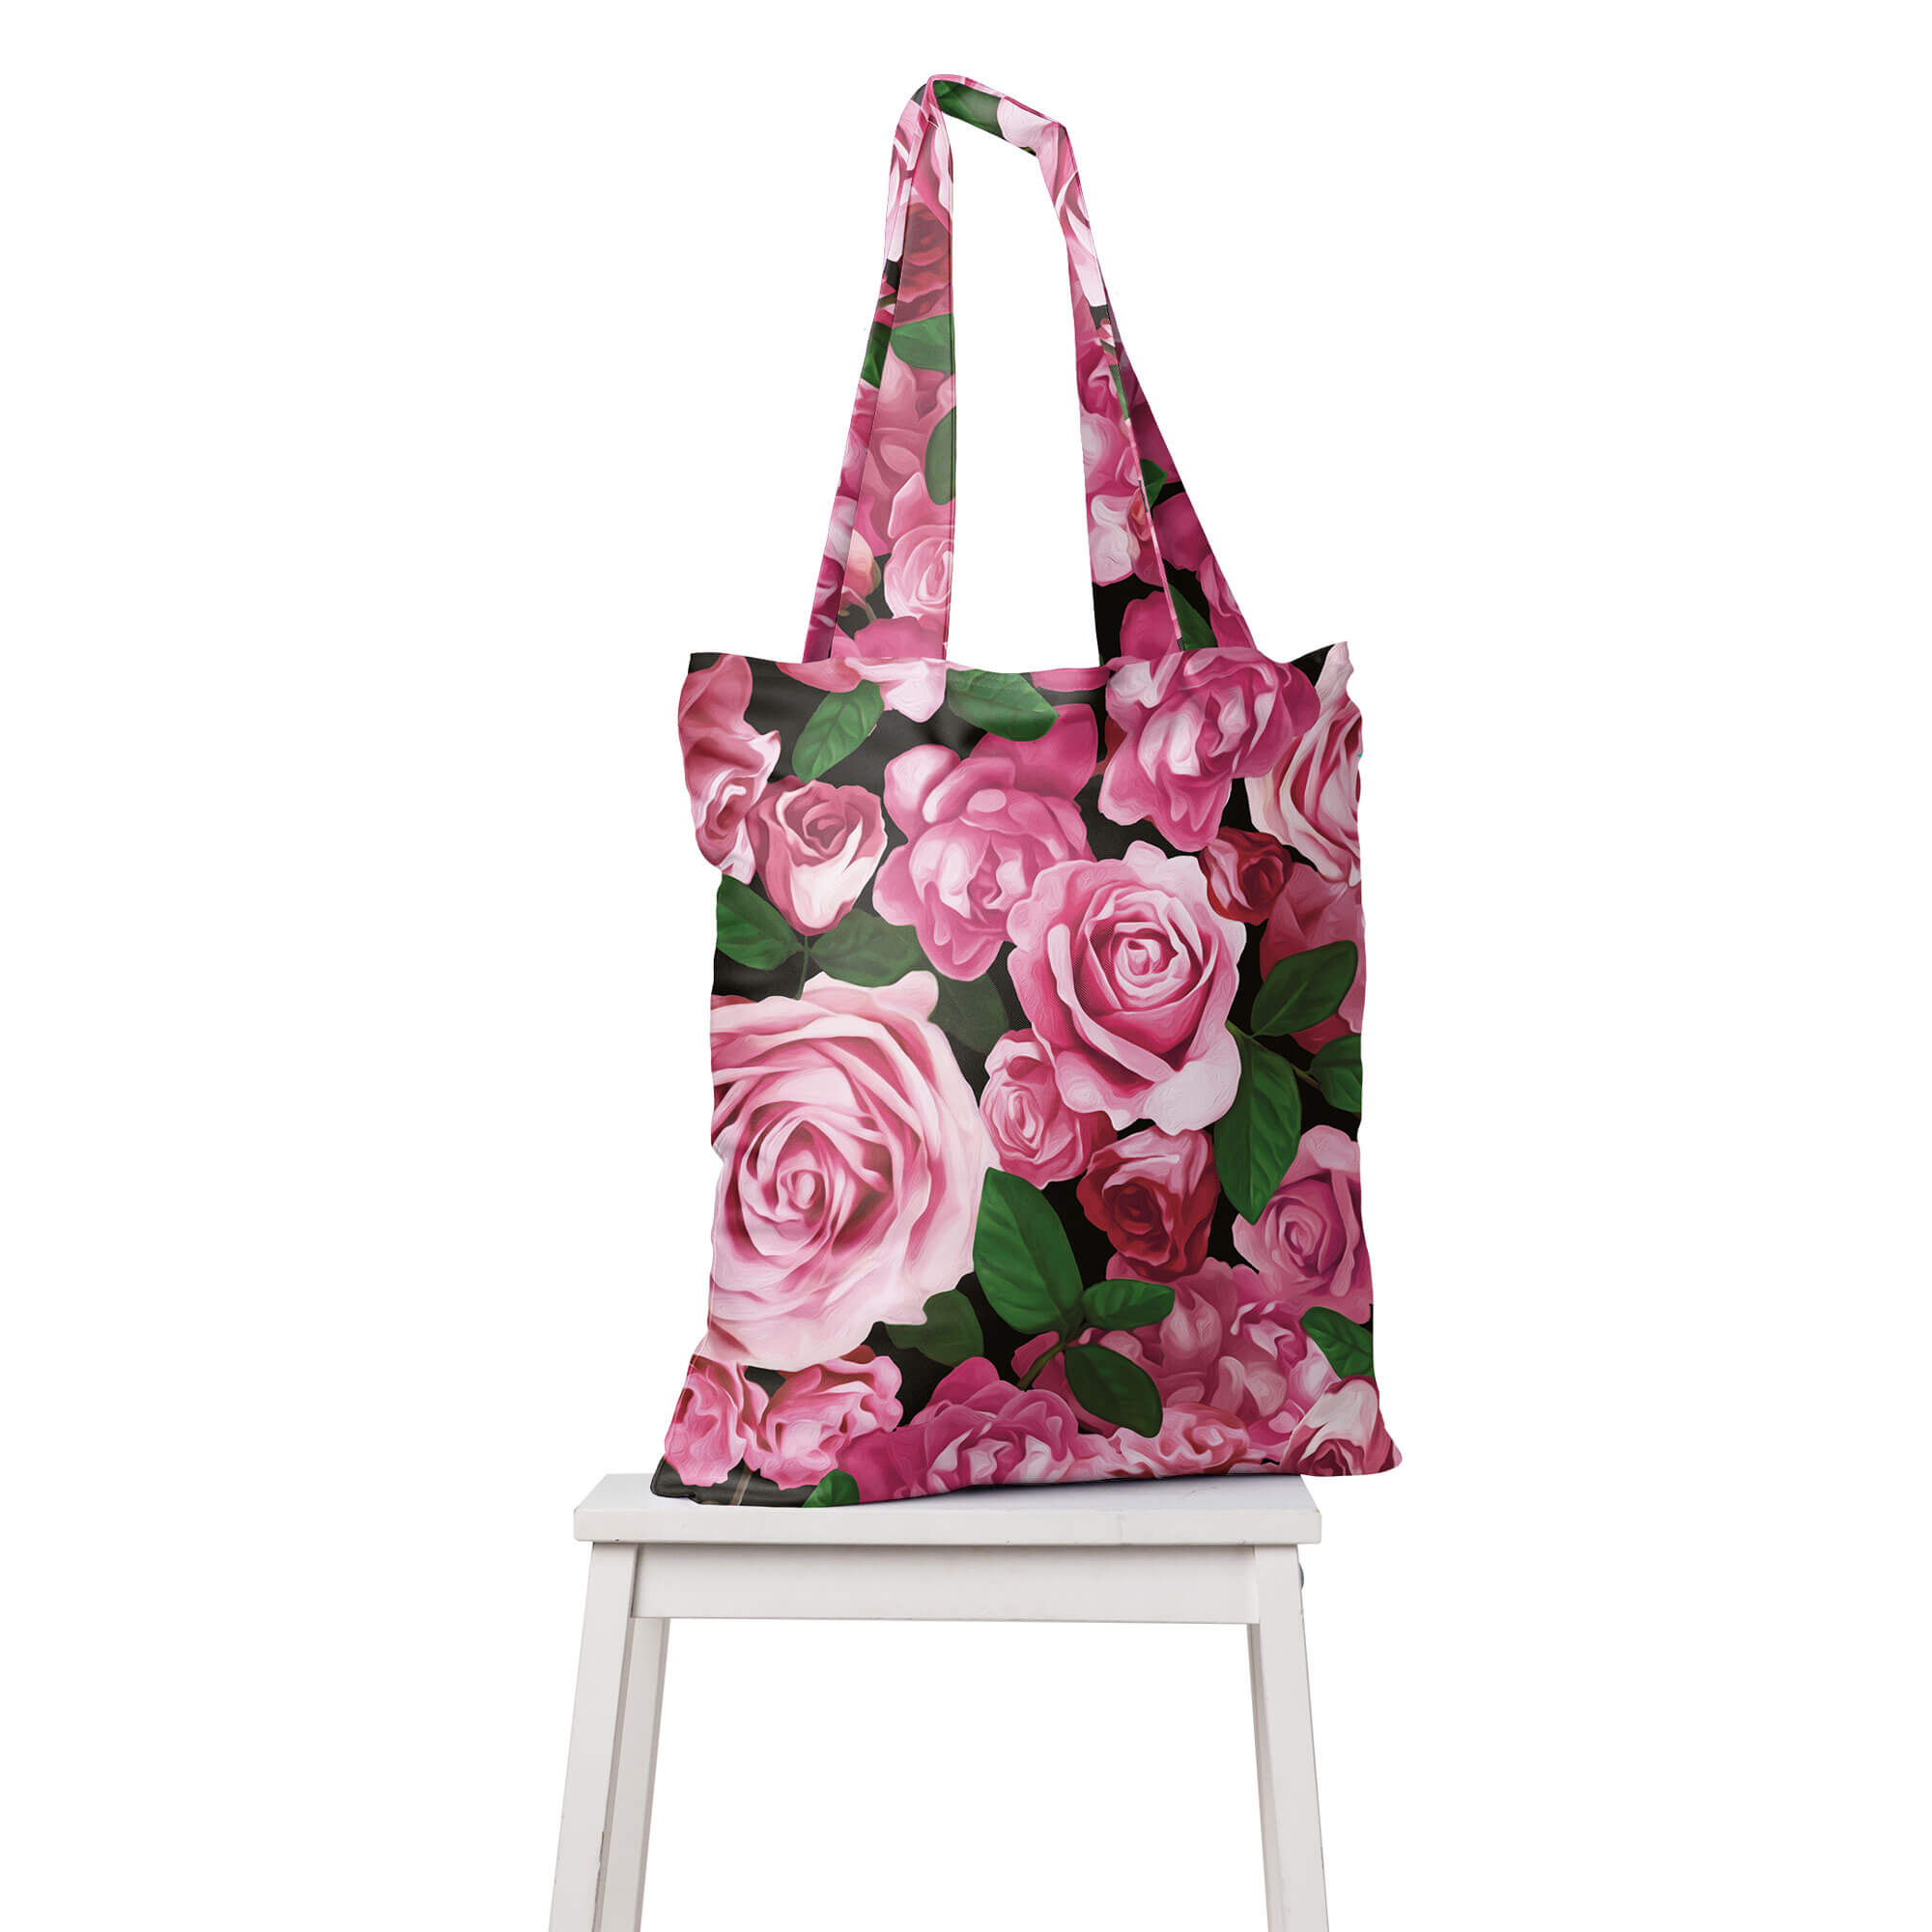 Roses_Torba_1_bag_cacofonia_milano_roses_pink_pinky_flowers